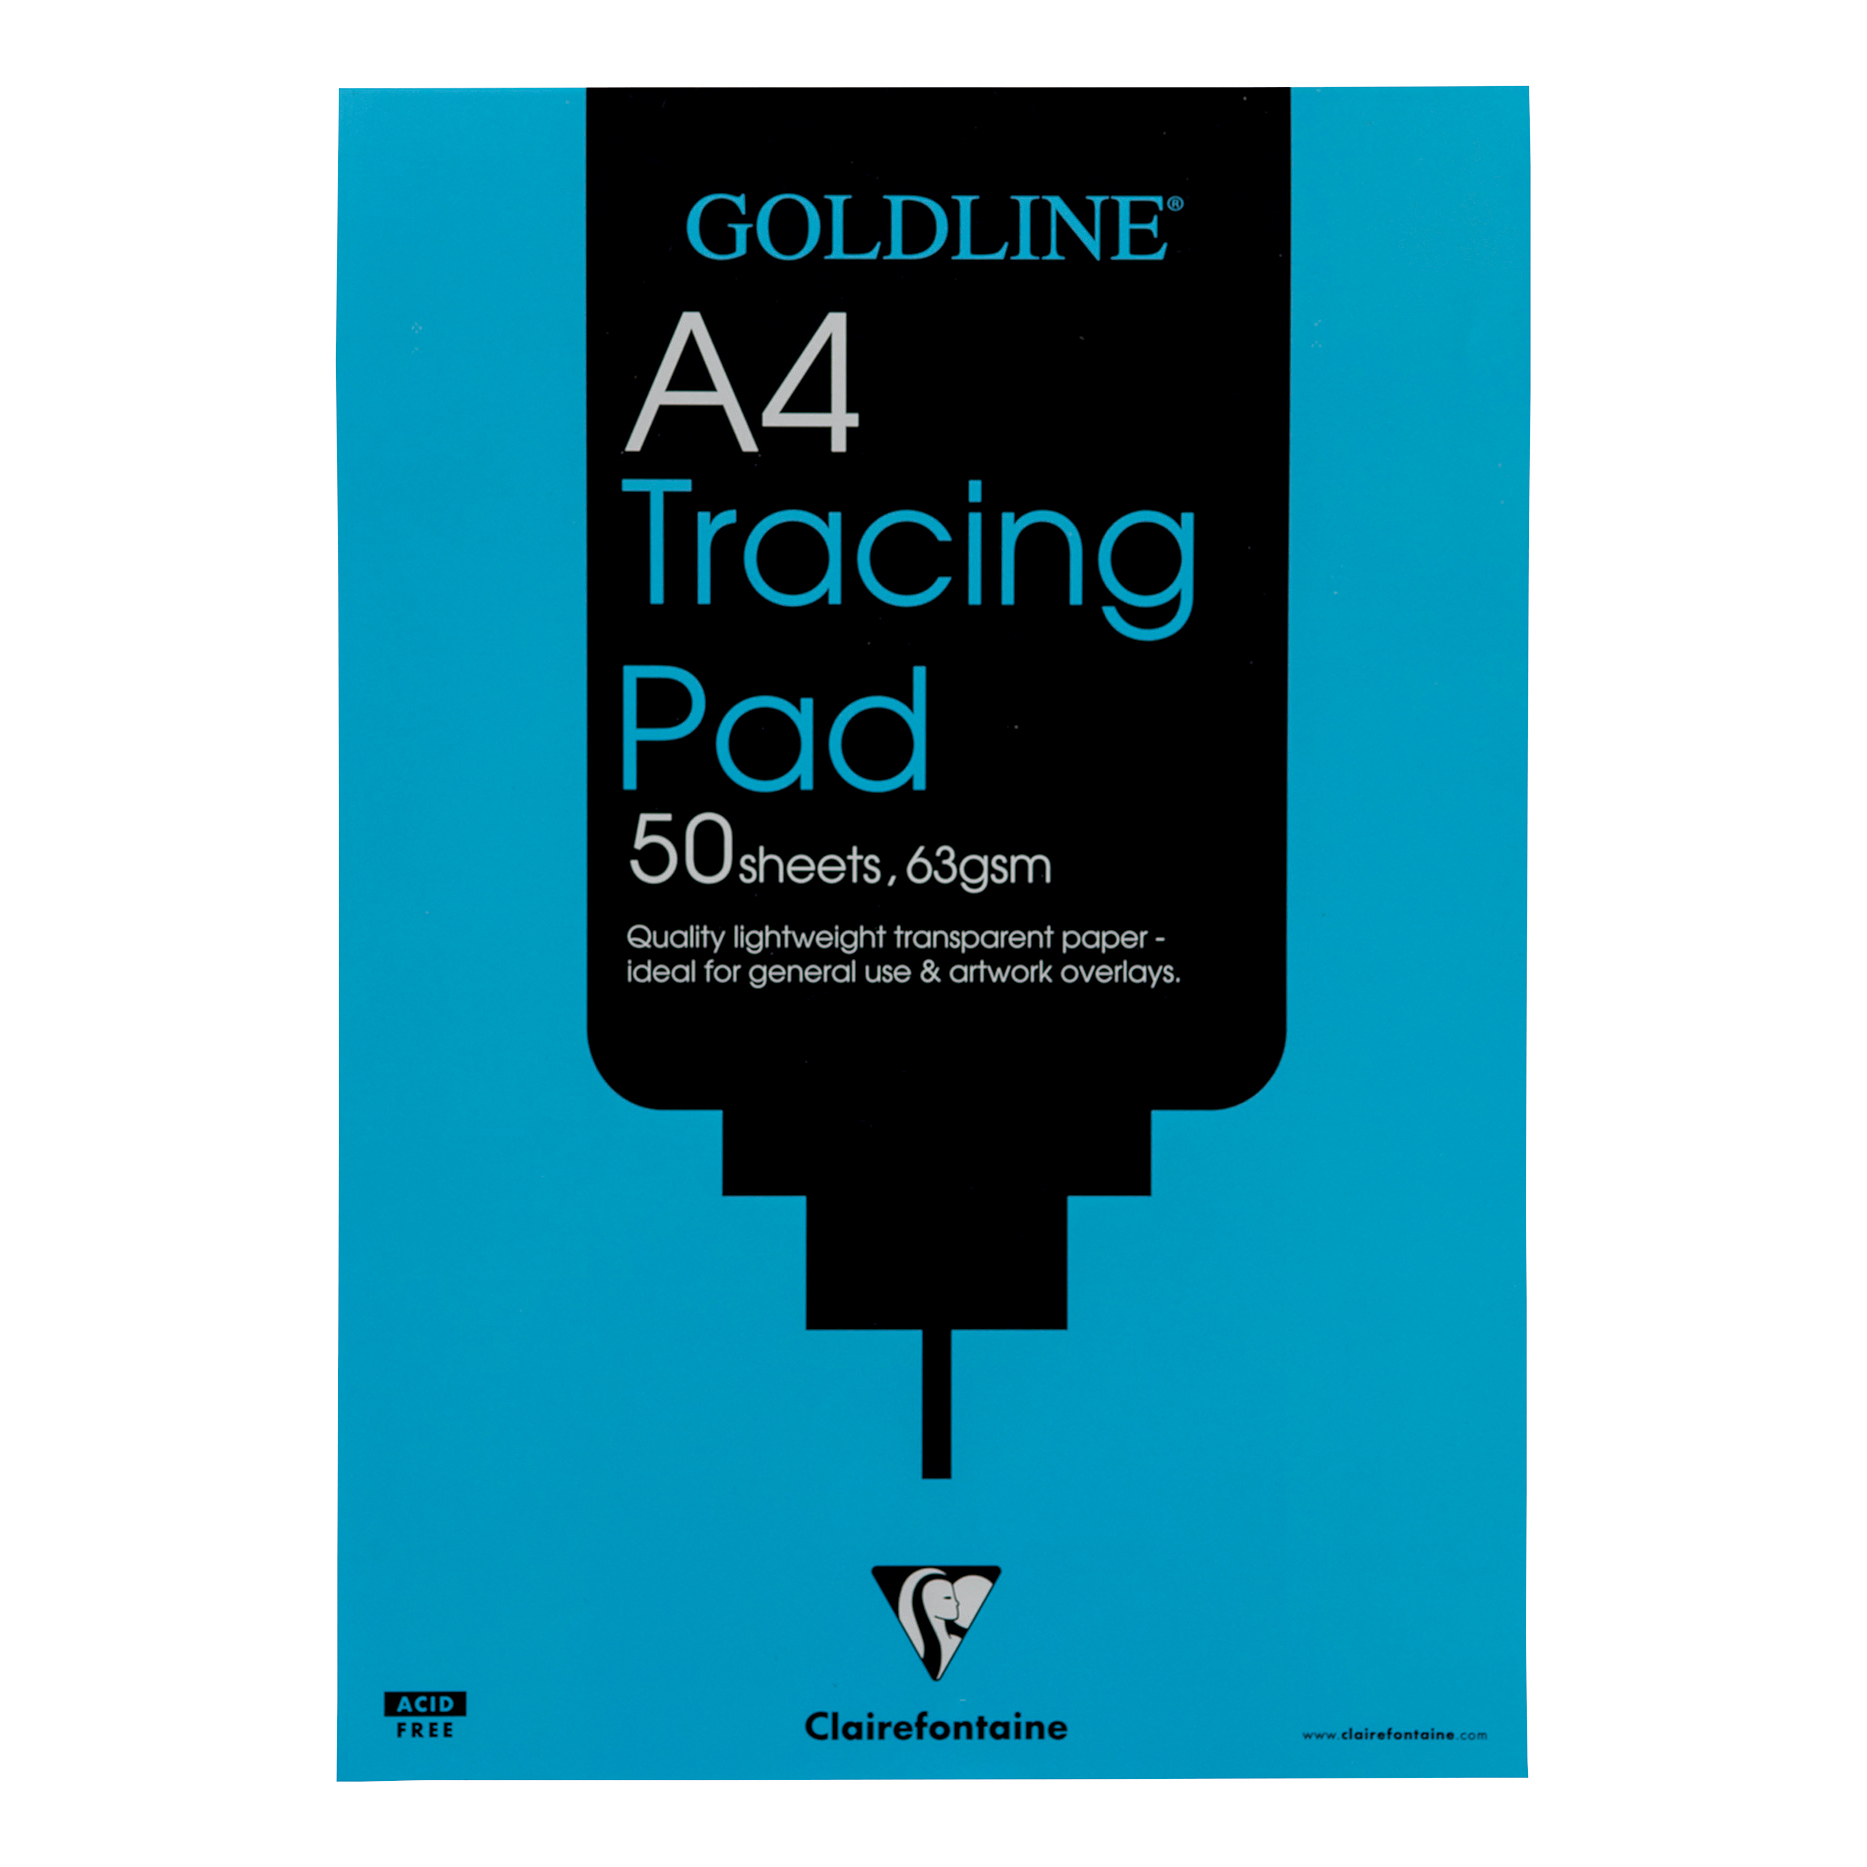 Goldline Popular Tracing Pad 63gsm Acid-free Paper 50 Sheets A4 Ref GPT2A4Z Pack 5